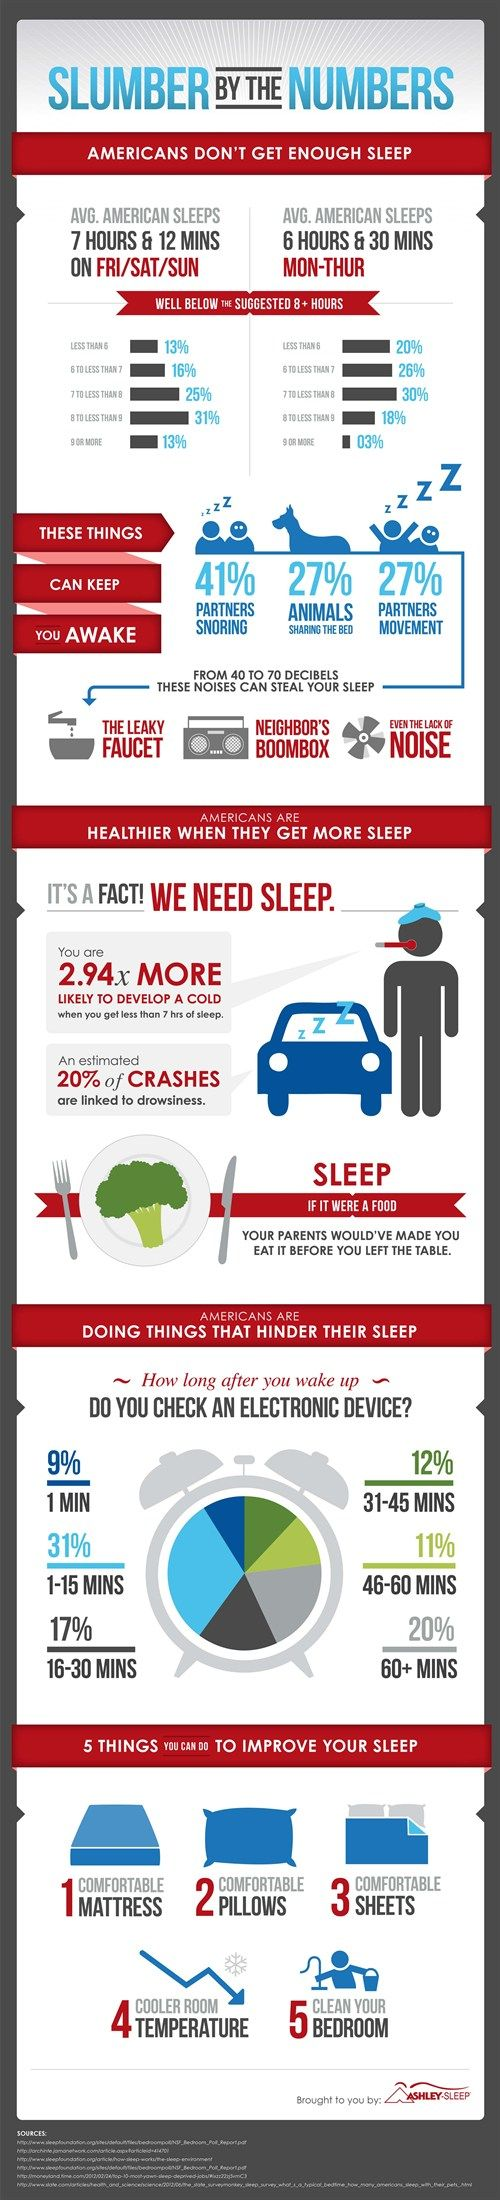 Slumber by the Numbers: Are You Getting Enough Sleep?